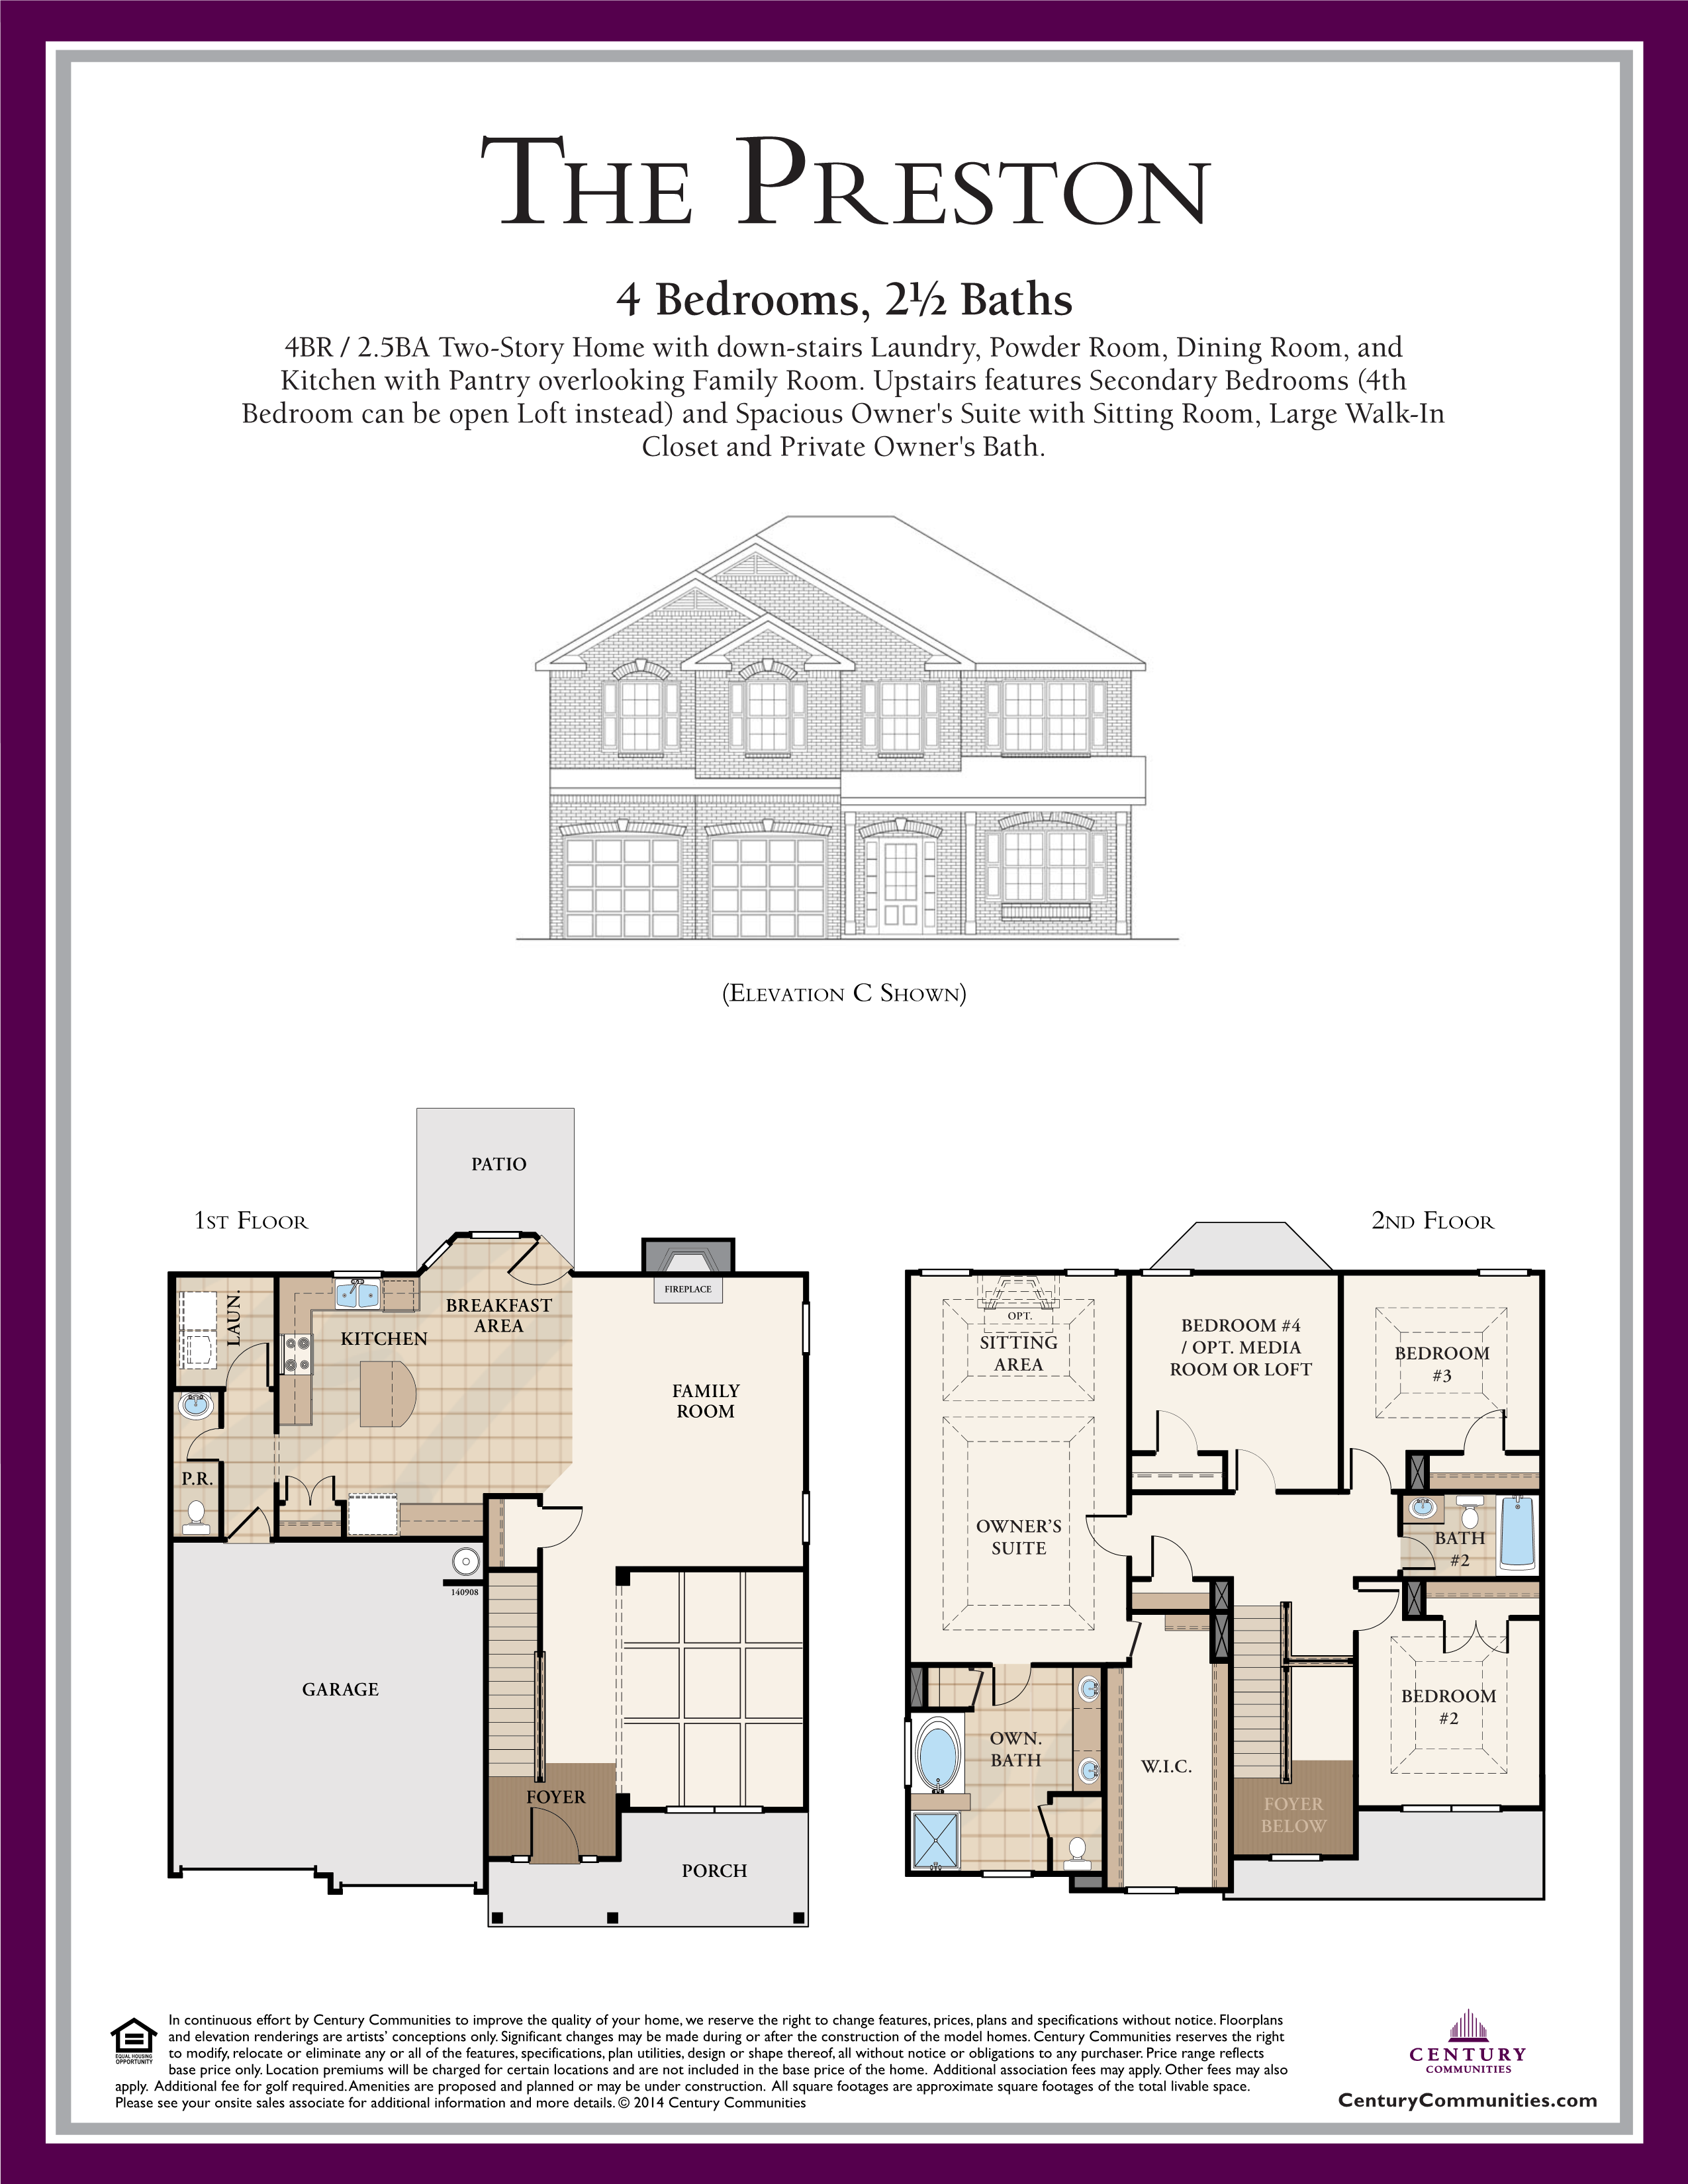 The Preston Floor Plan Is A 4BR 25BA Two Story Home With Down Stairs Laundry Powder Room Dining And Kitchen Pantry Overlooking Family